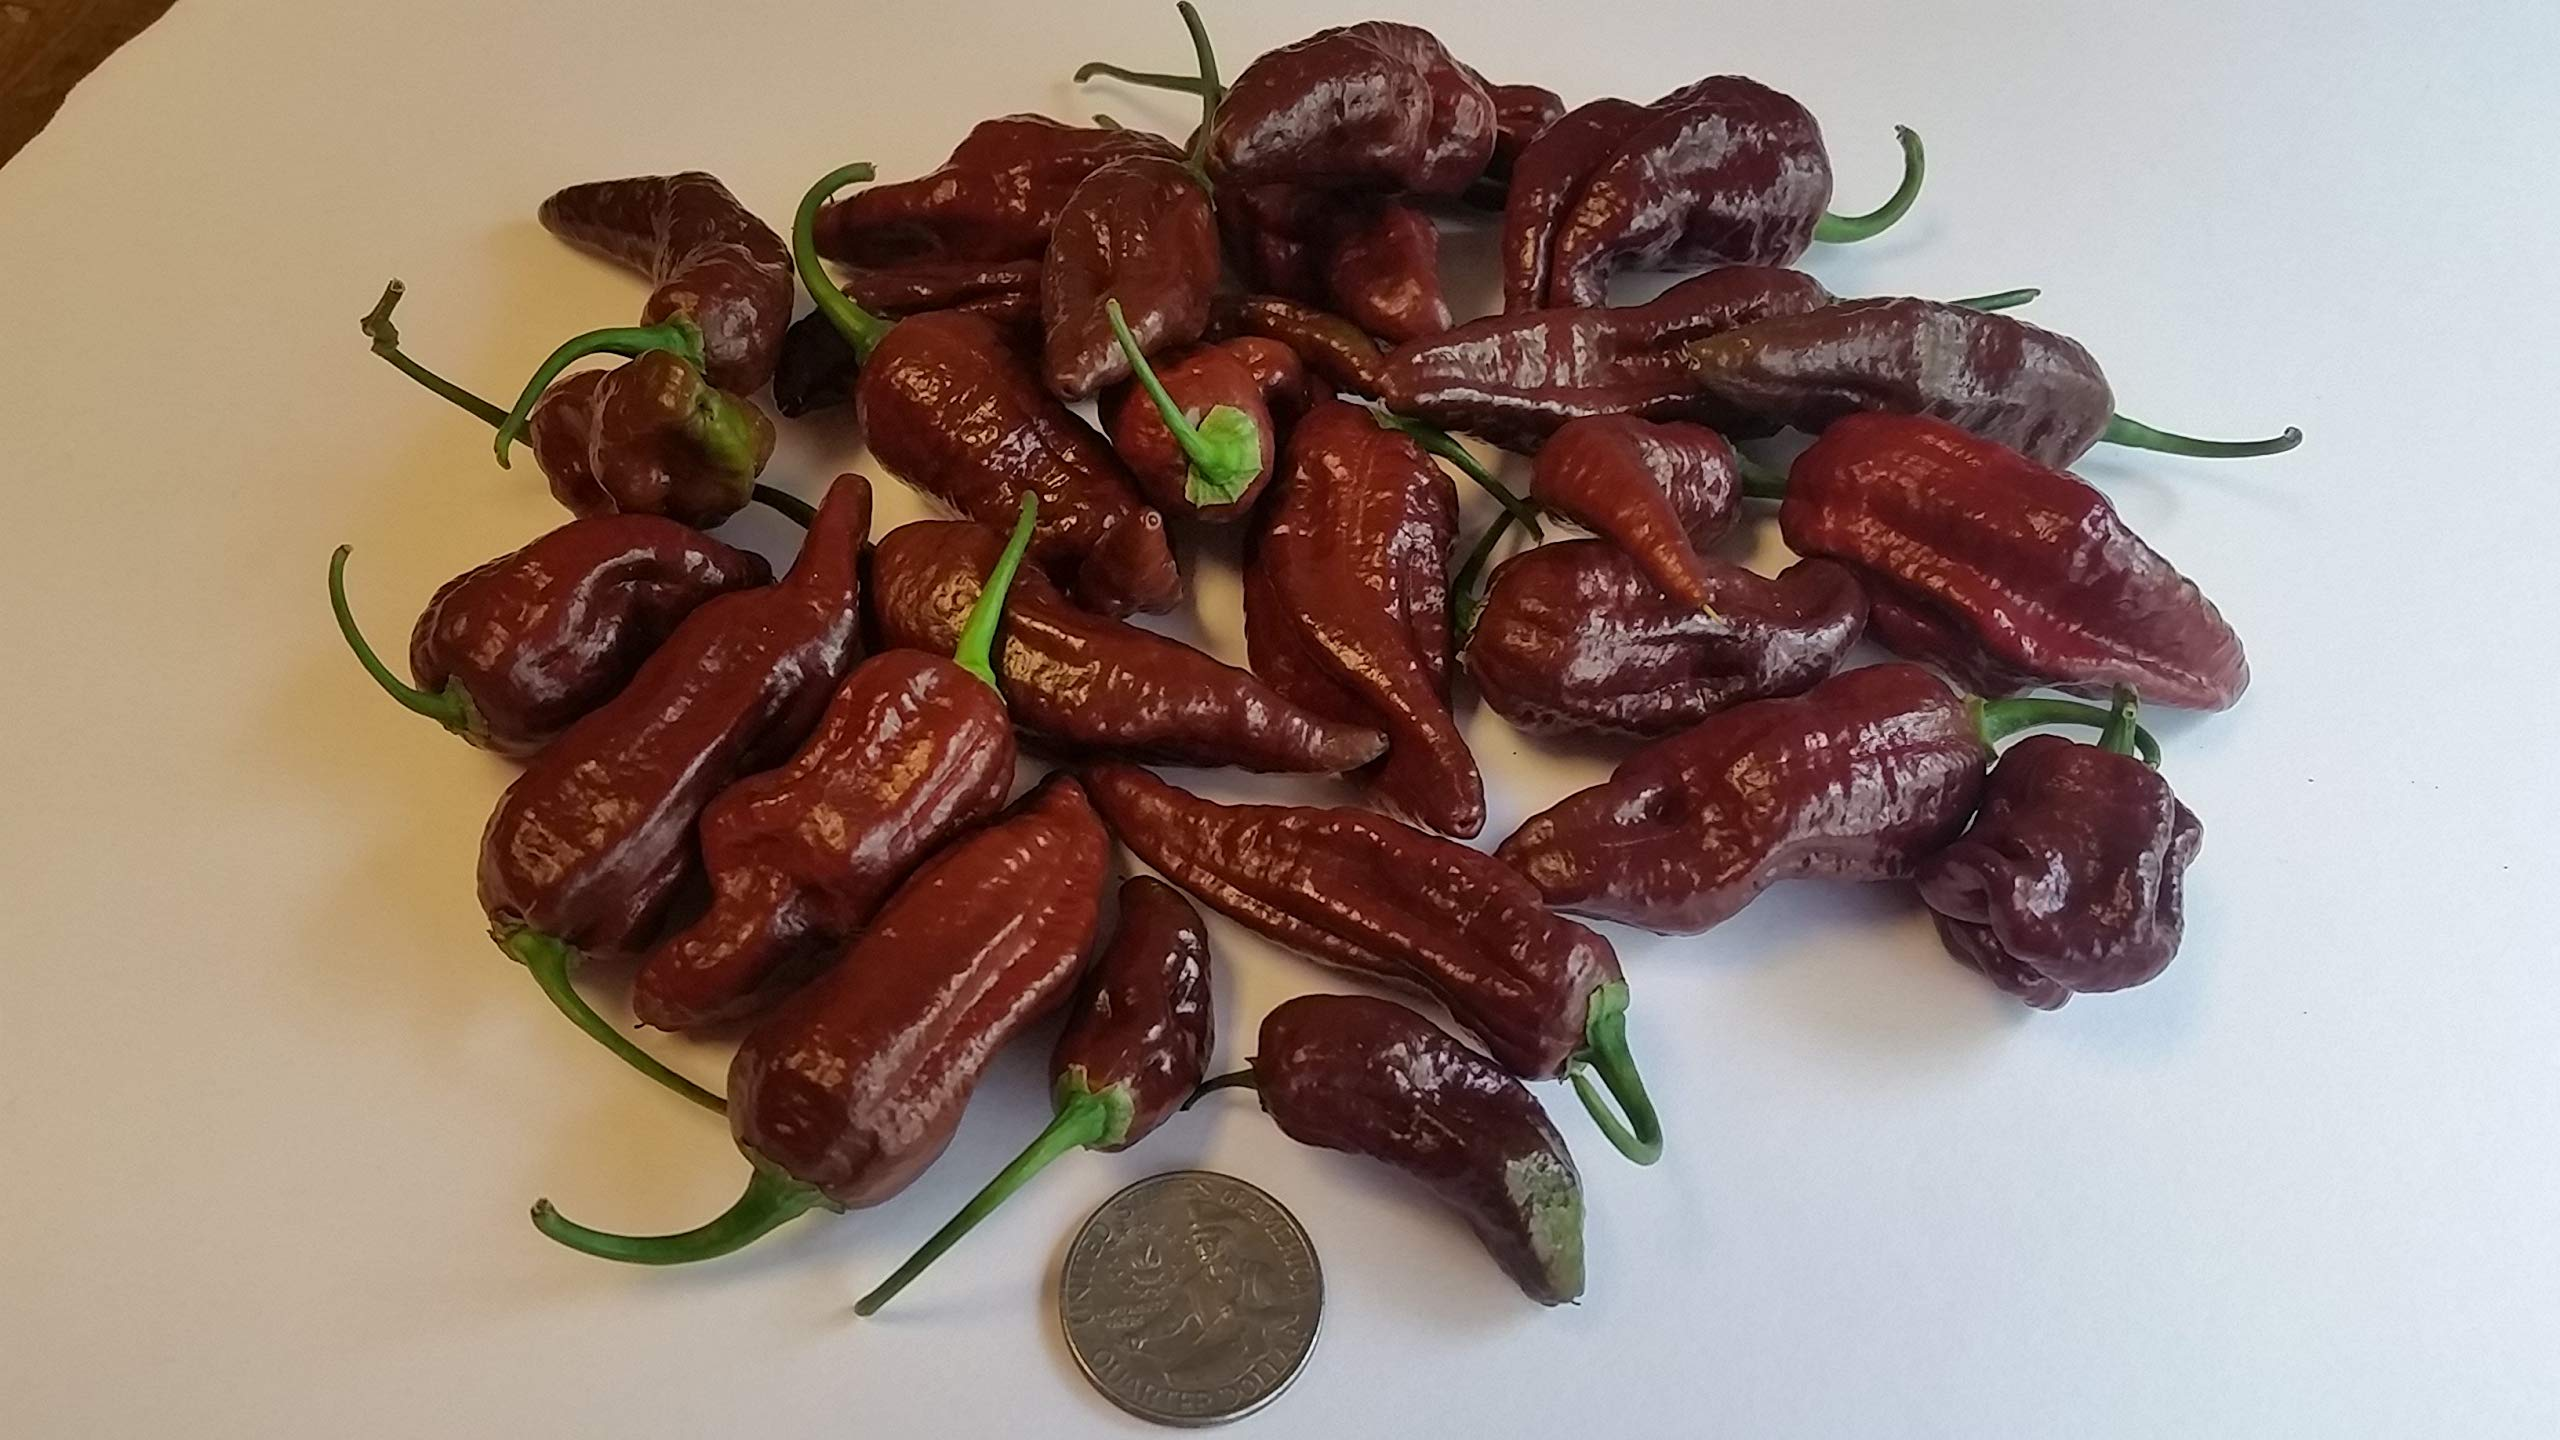 Fresh Super Hot Peppers - Mixed Box: All Chocolate/Brown Colored Peppers by Bohica Pepper Hut